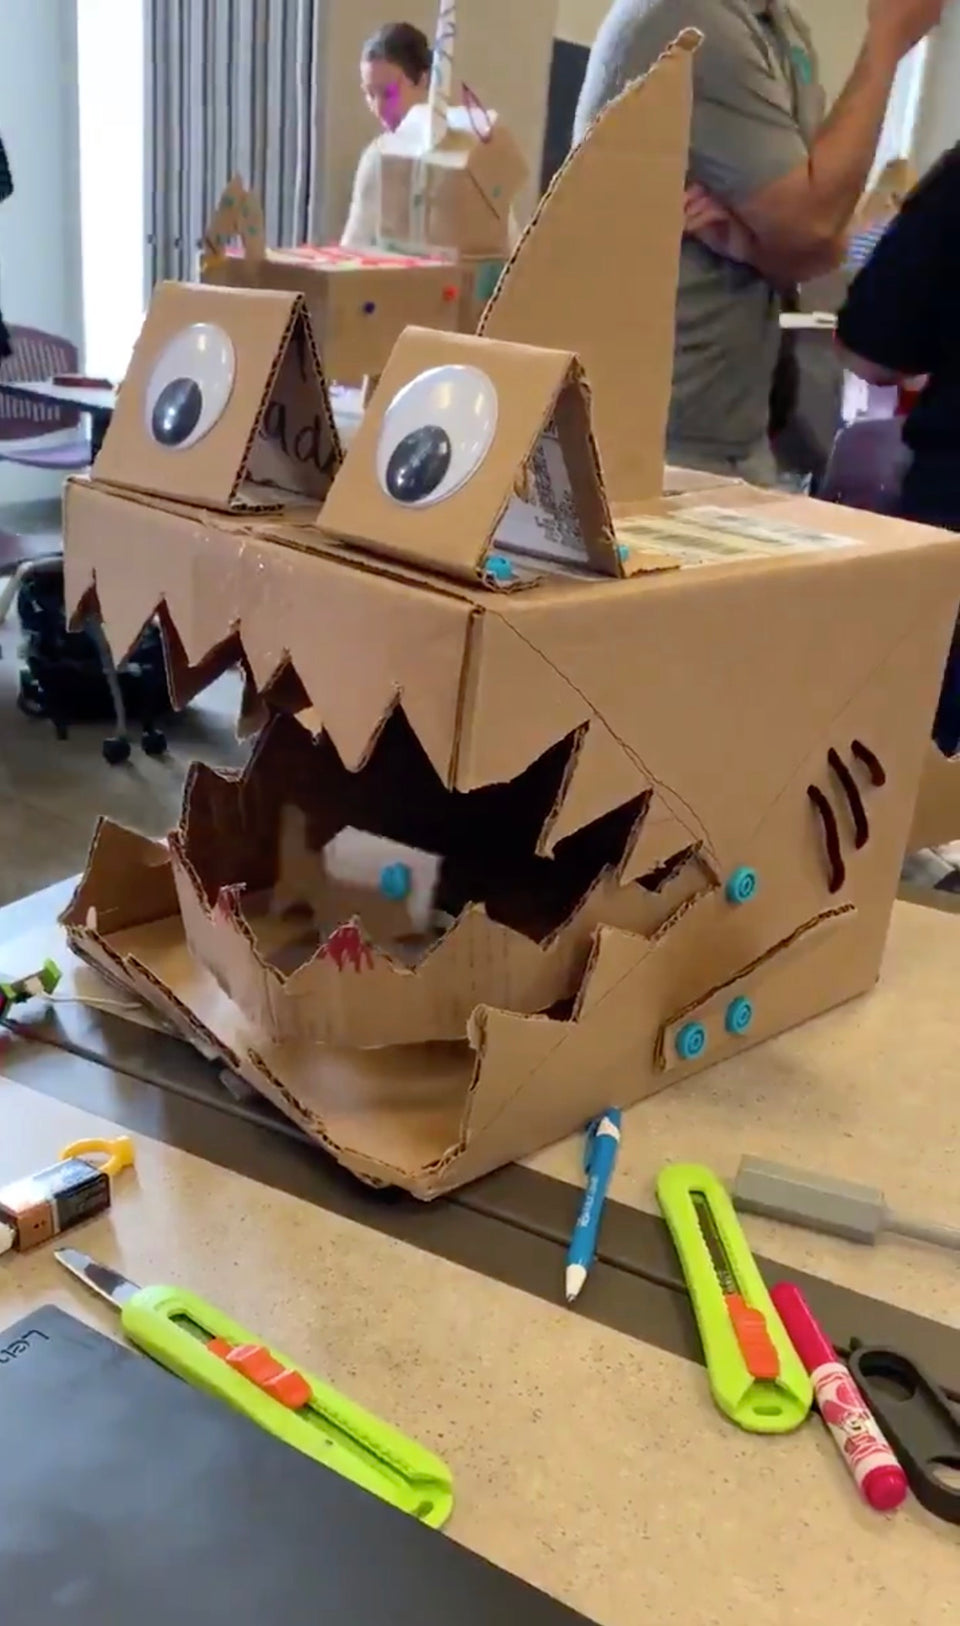 Makedo cardboard shark with littlebits animated fish inside its mouth.